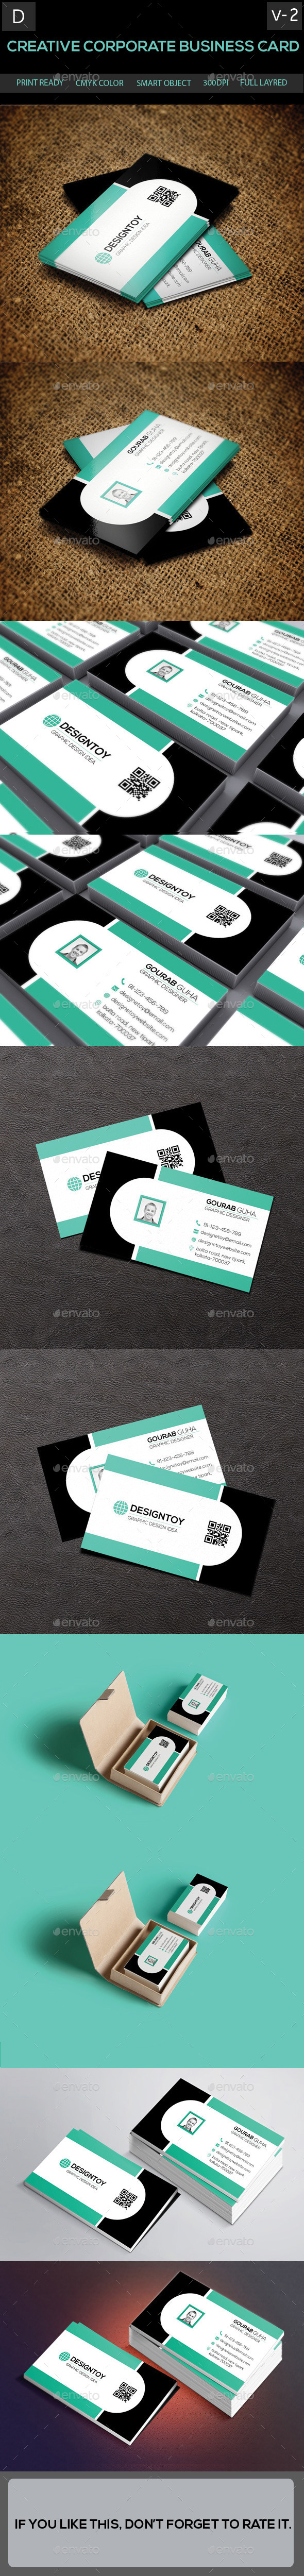 GraphicRiver Creative Corporate Business Card [Volume-2] 9327816